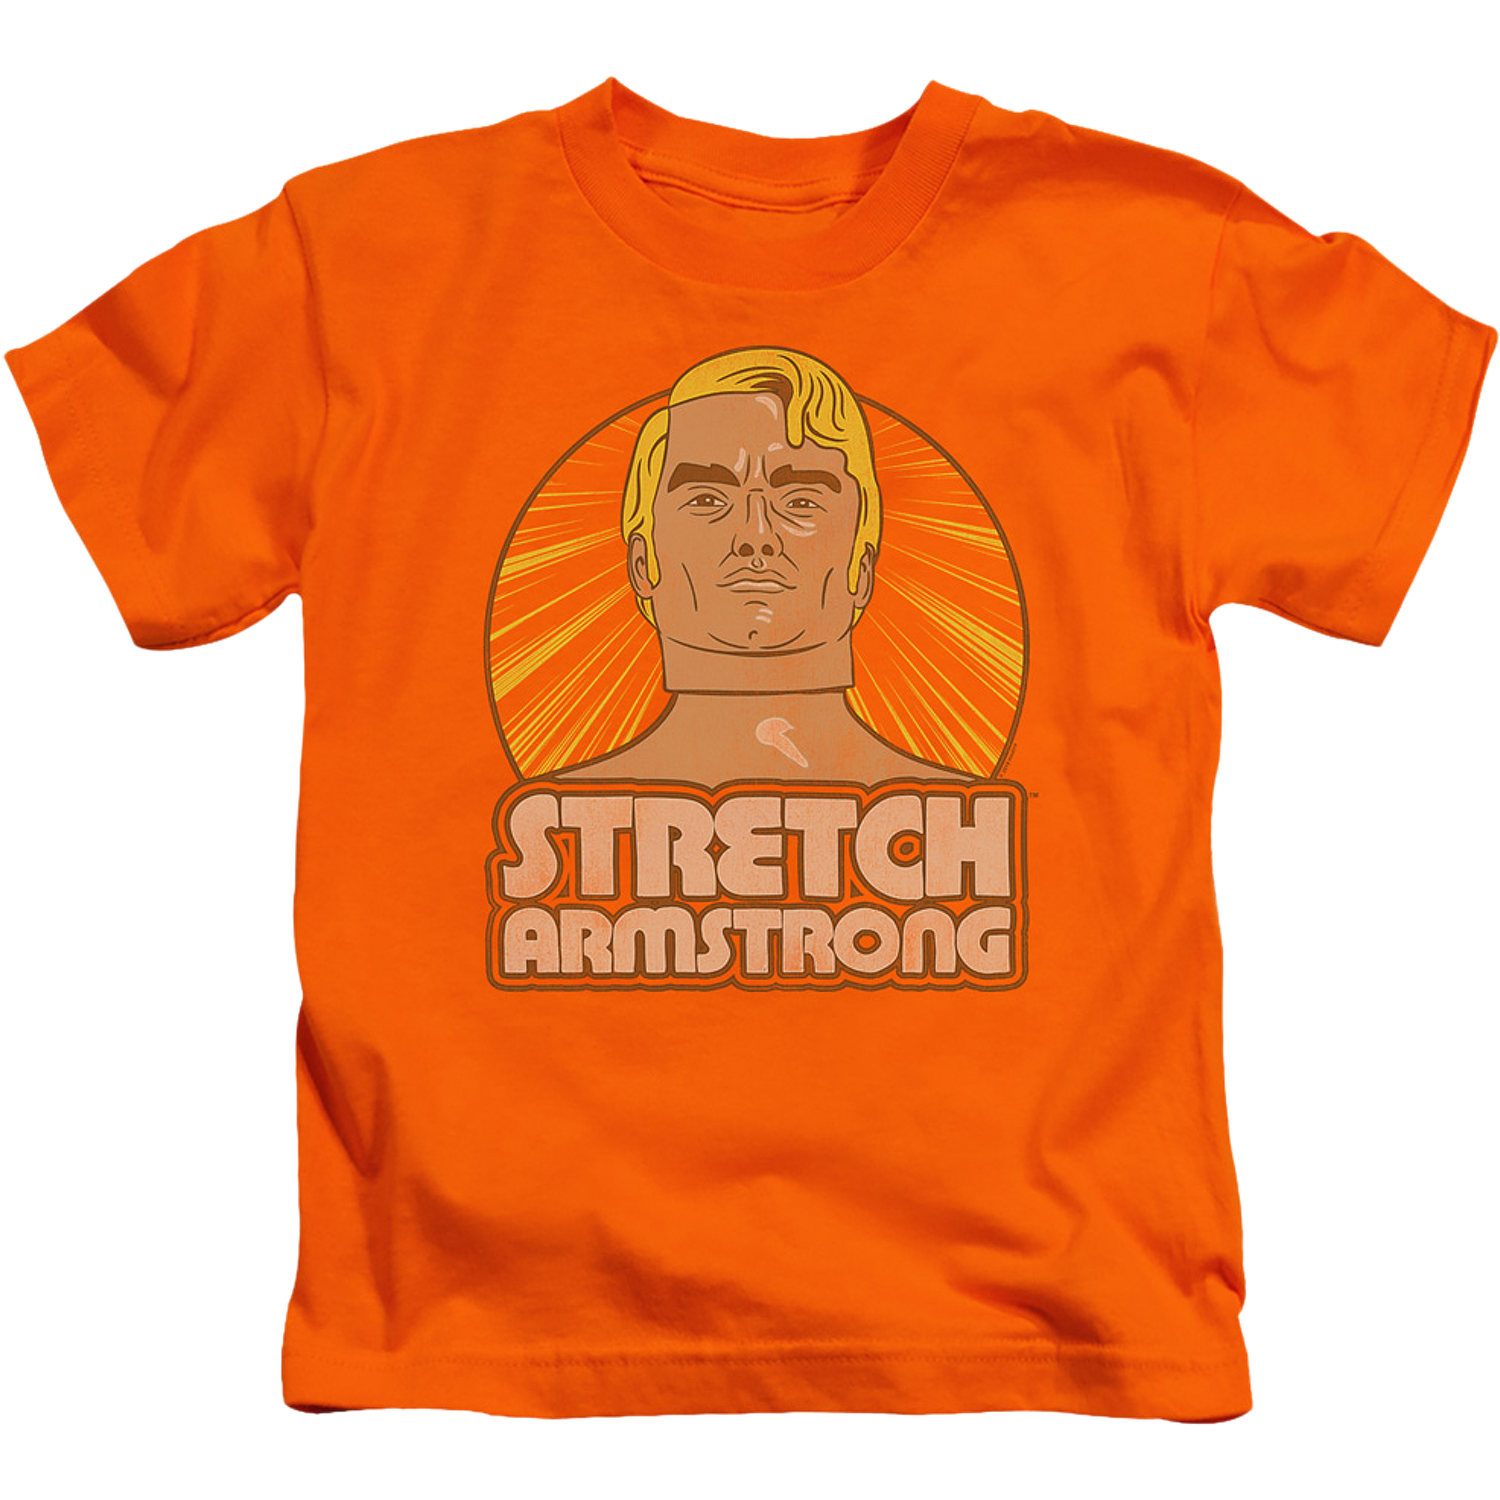 youth stretch armstrong shirt Unisex T-Shirt All Color Size Up To 5XL